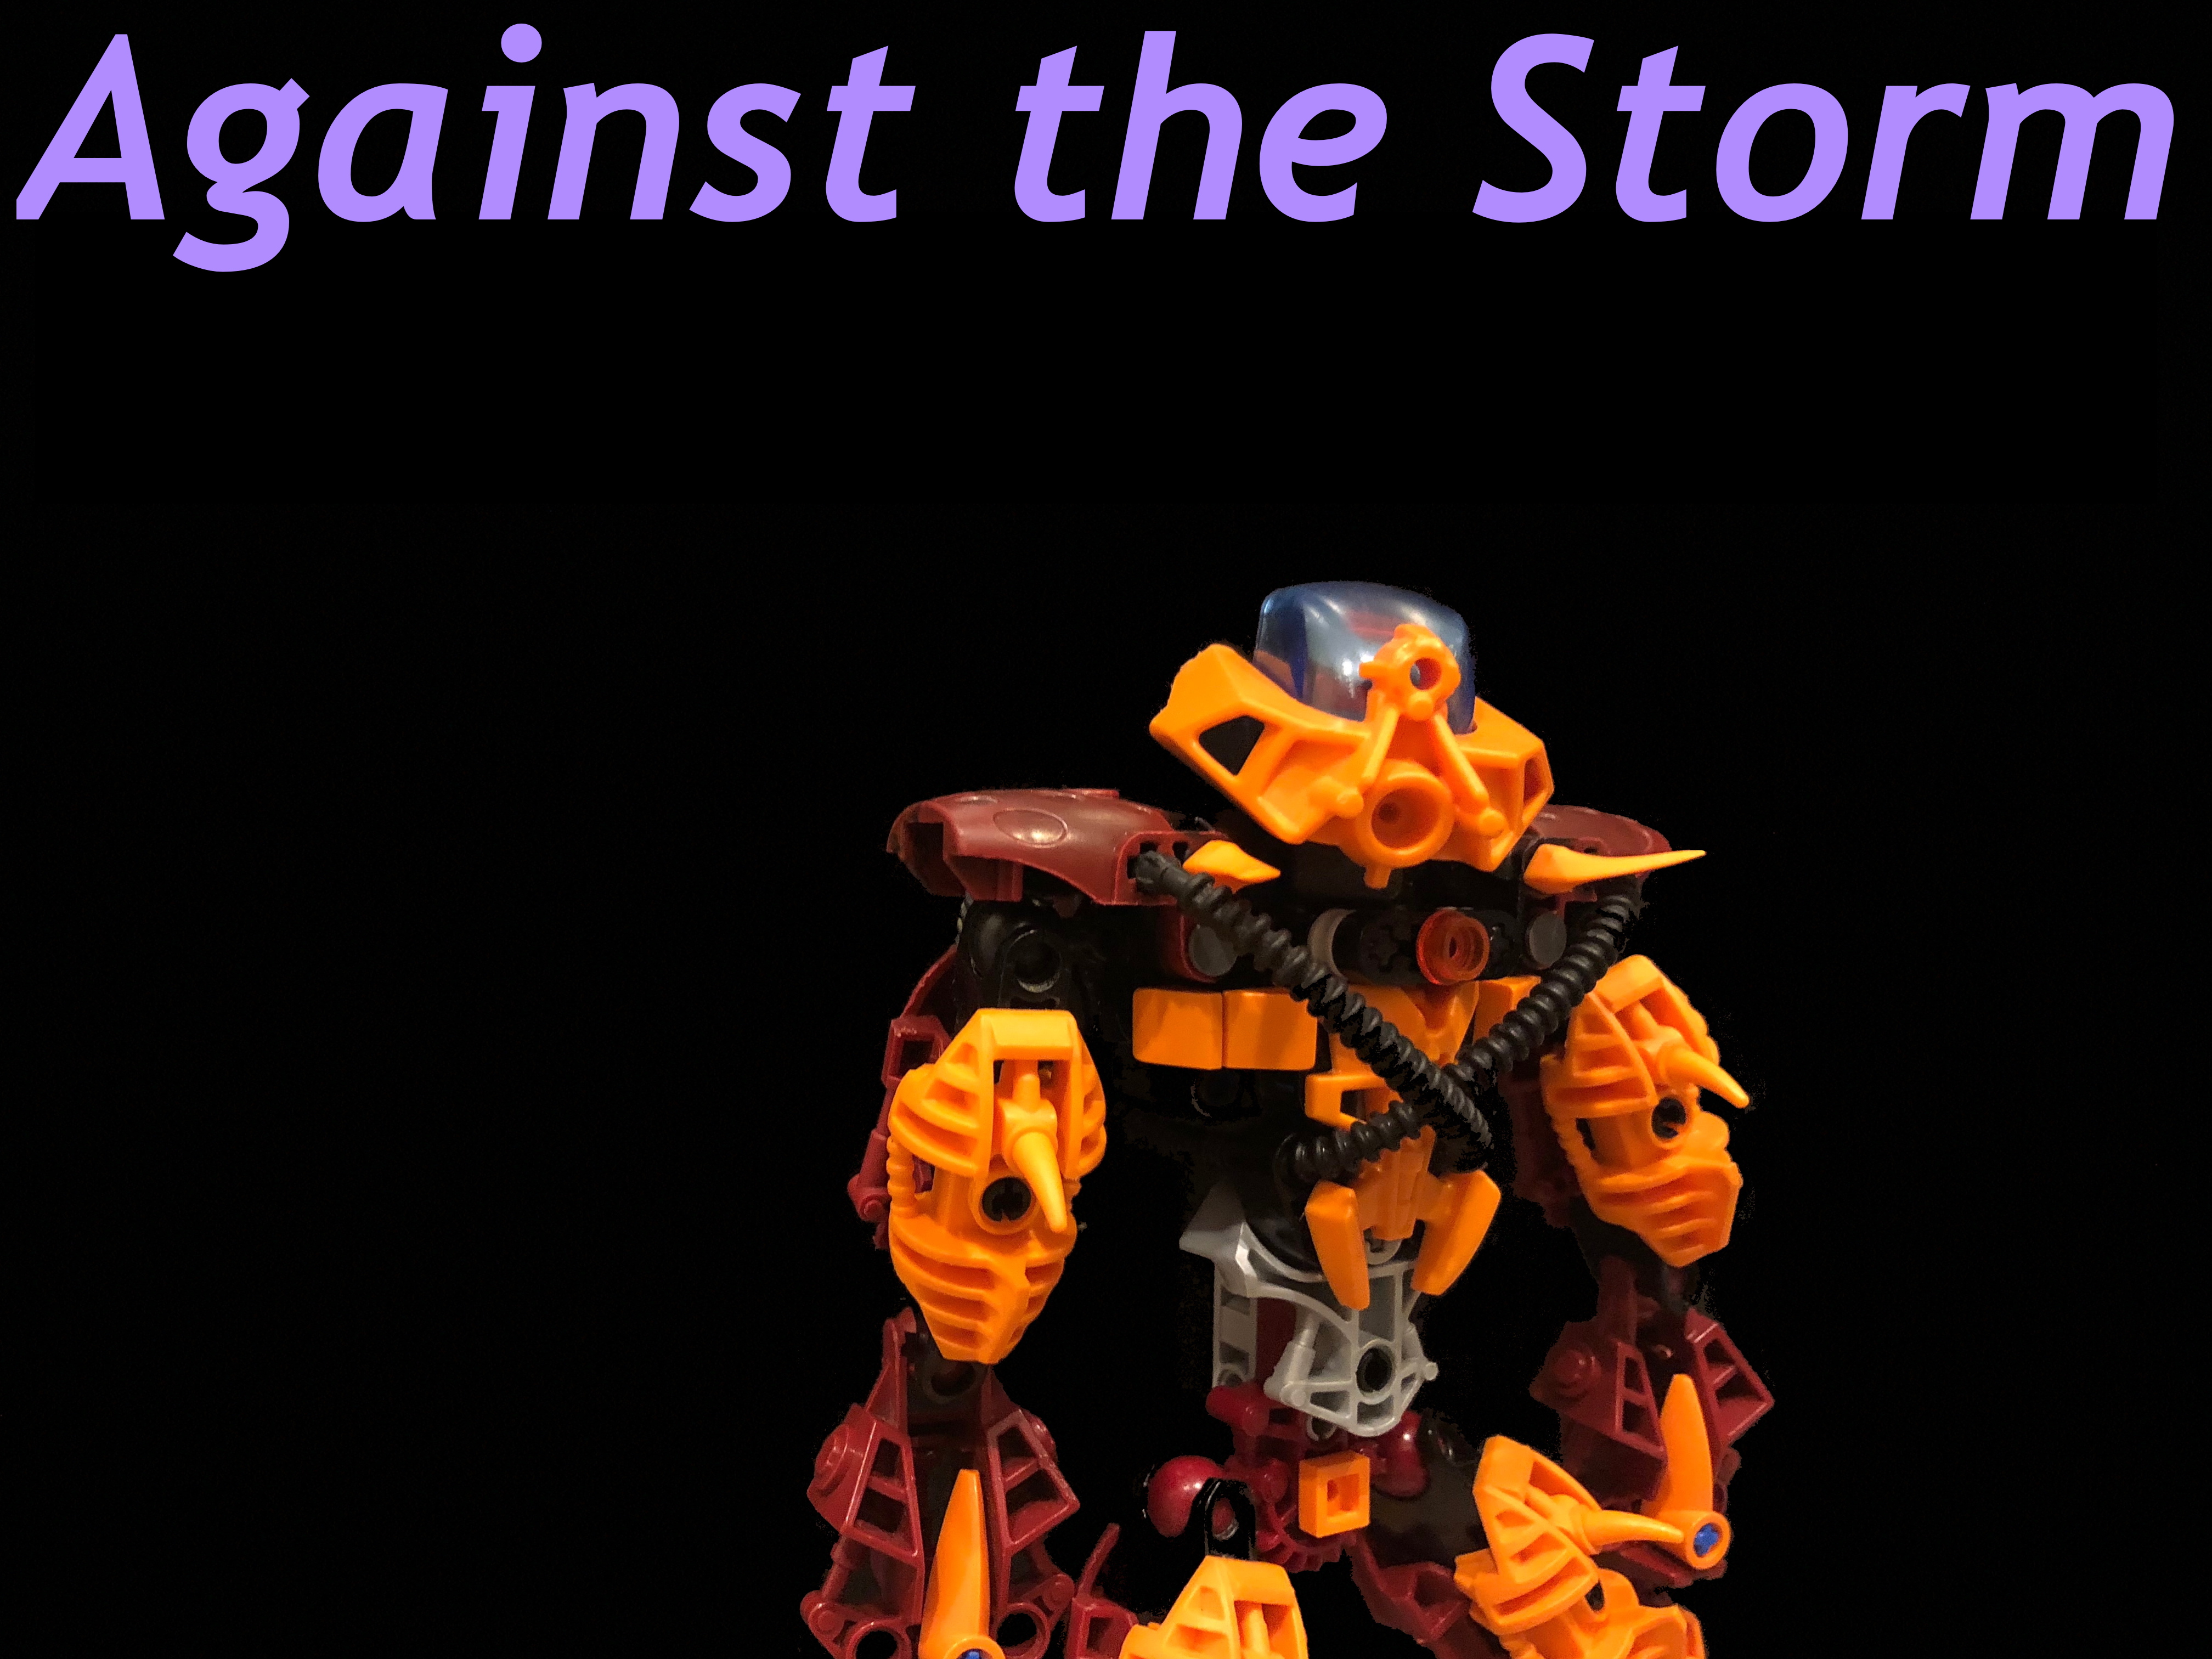 Against the Storm/Volume IV